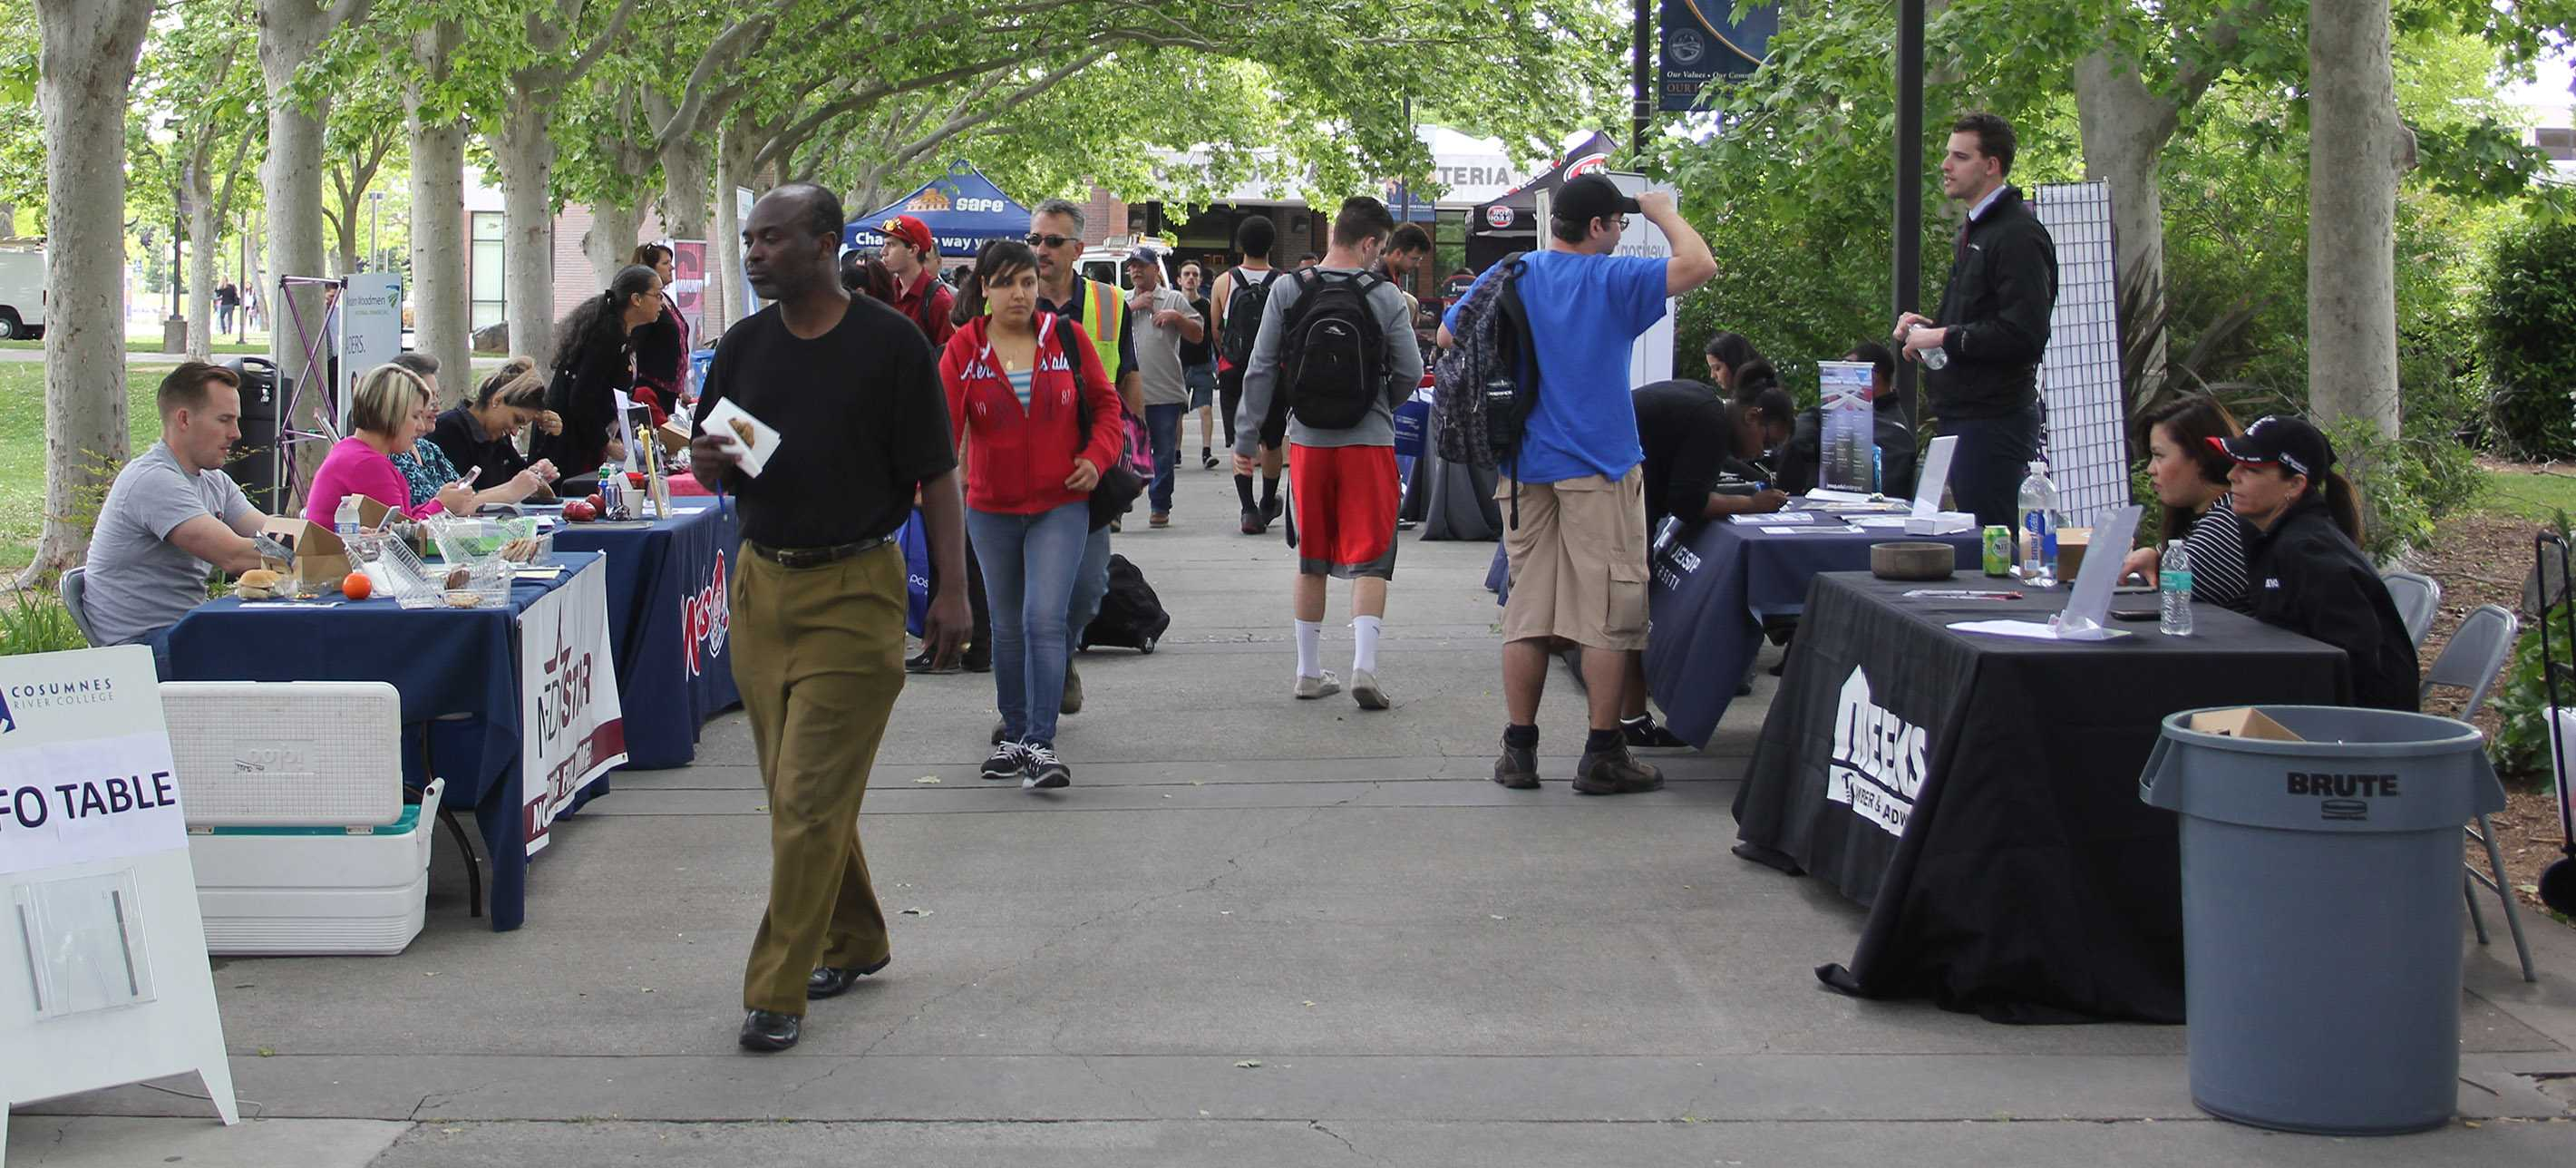 Plenty of vendors were out offering opportunities to students on April 27.  This was the largest career fair the campus has put on since the start of the program.